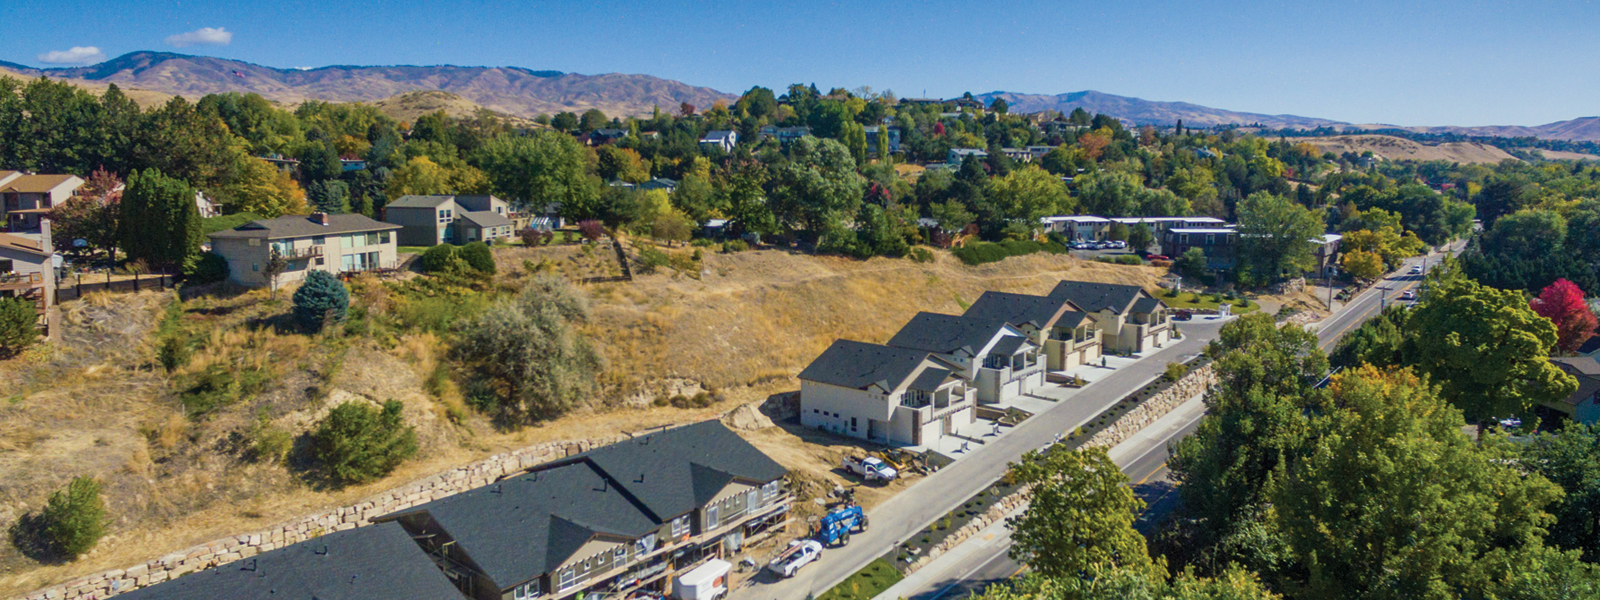 North Hill Townhomes in Boise Idaho foothills. Photo by Build Idaho